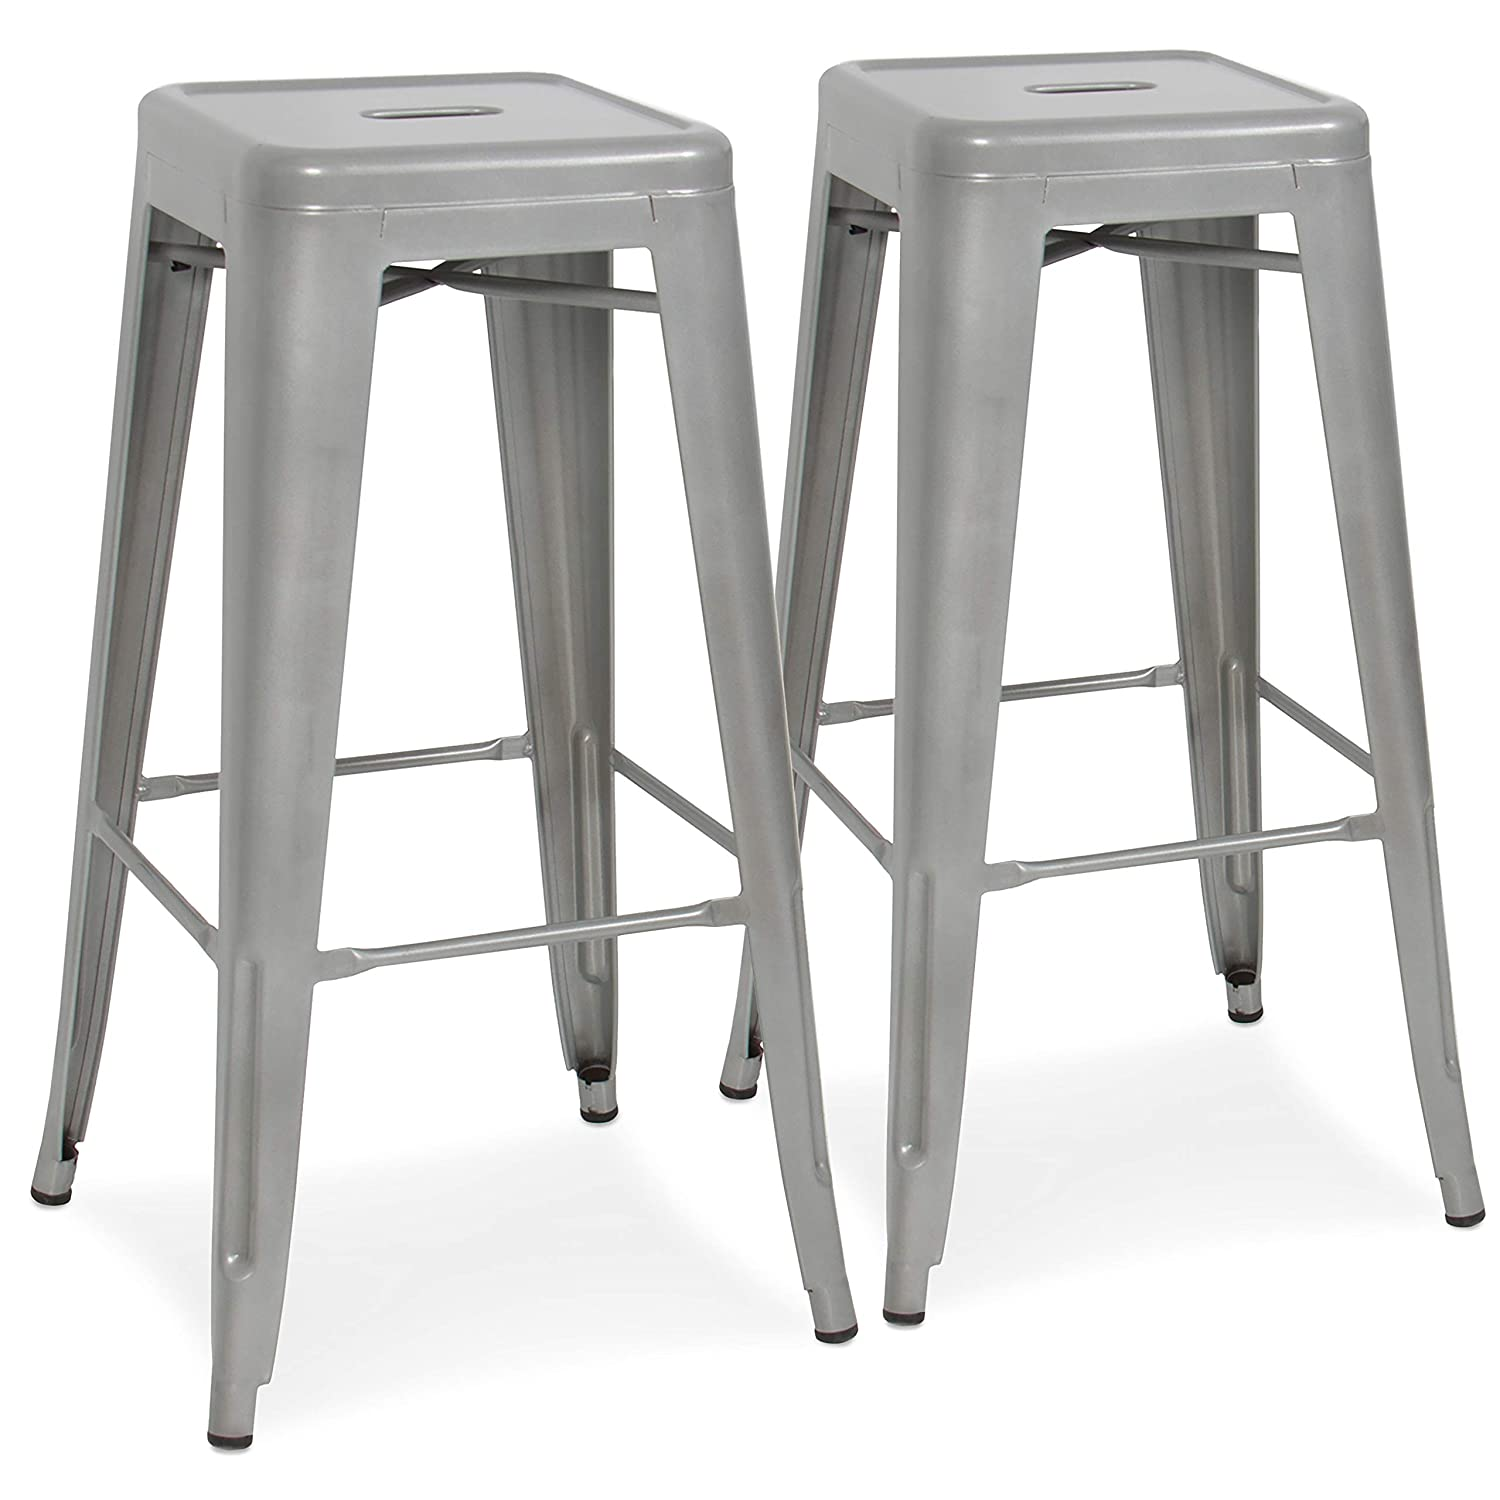 Best Choice Products 30in Set of 2 Modern Industrial Backless Metal Counter Height Bar Stools w/Drainage Holes for Indoor/Outdoor Kitchen, Bonus Room, Patio - Silver